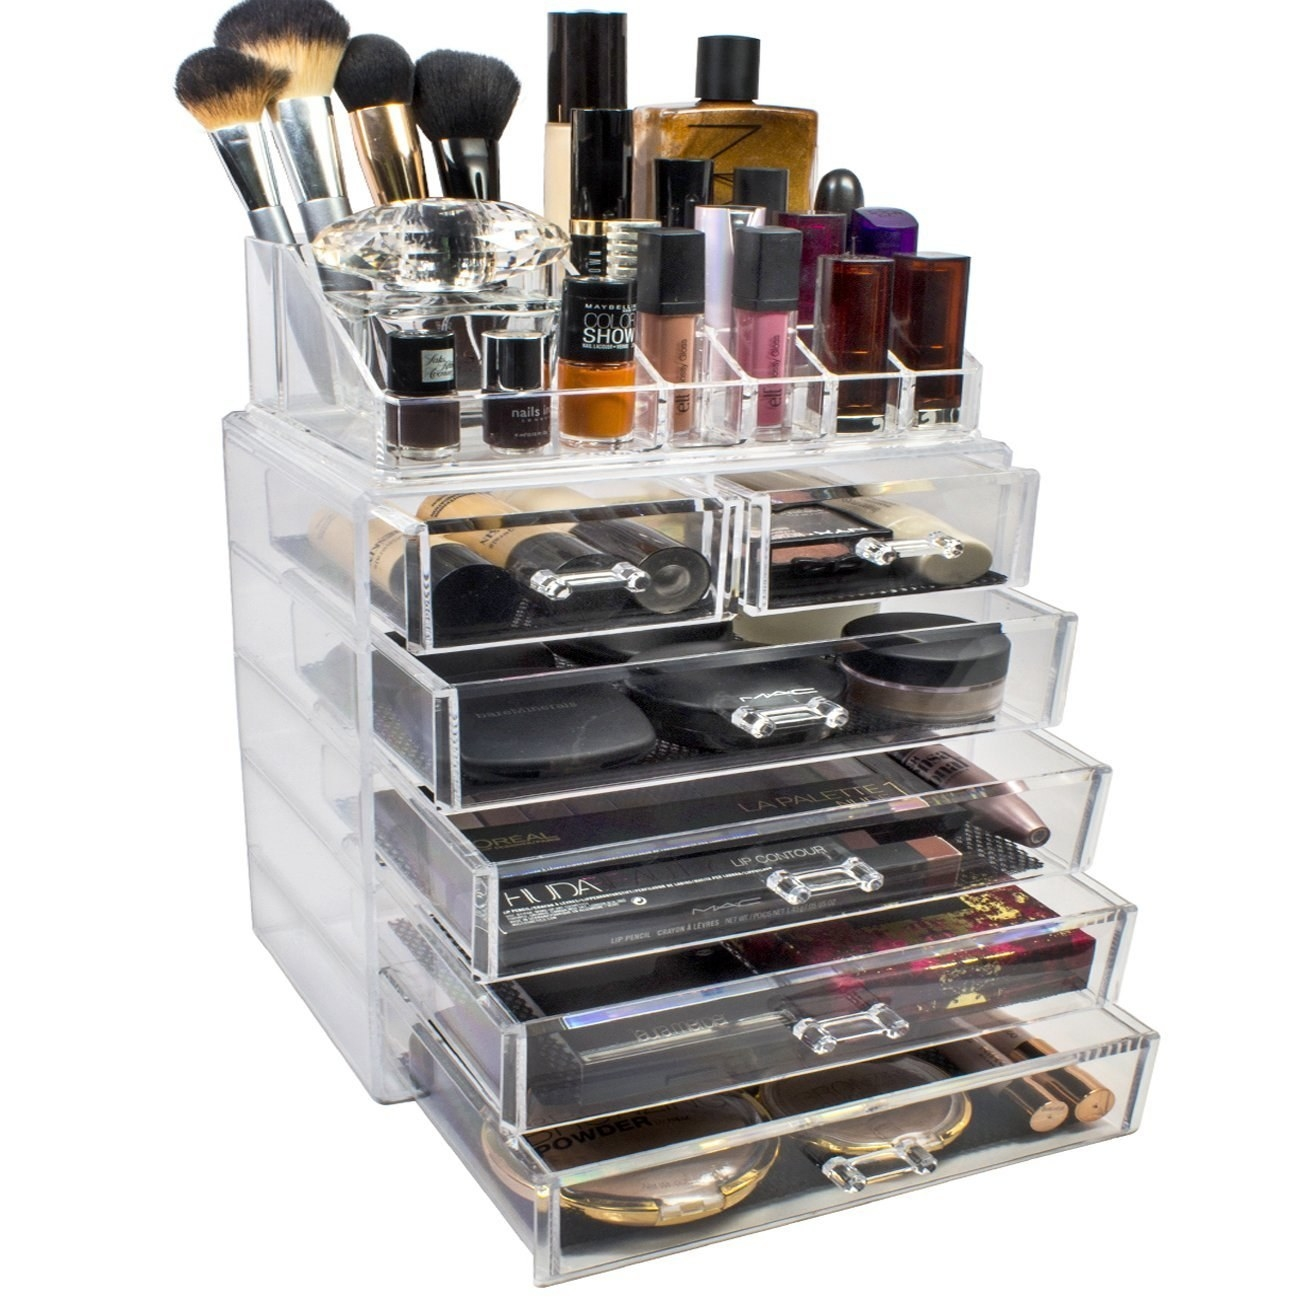 The cosmetic and jewelry storage case